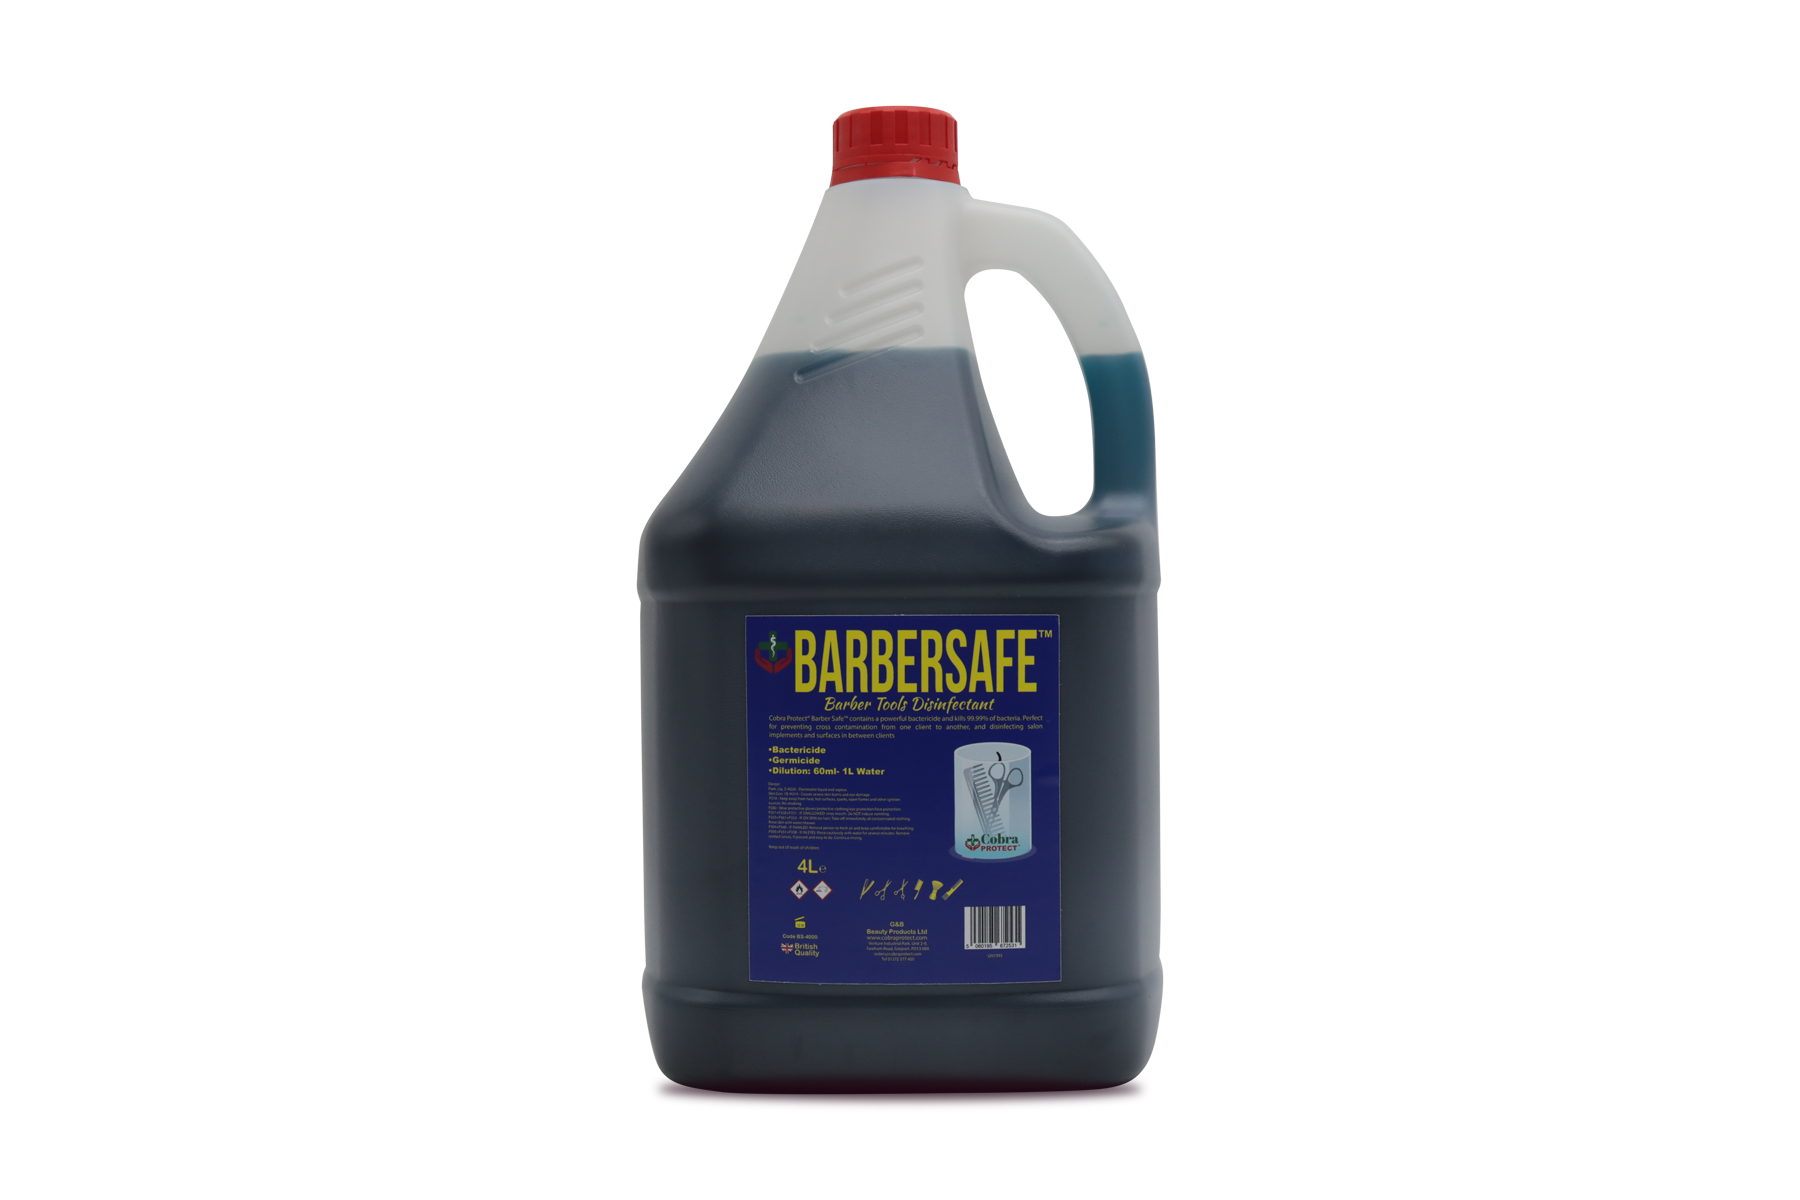 4 L Barbersafe™ + Free 1 Face Shield